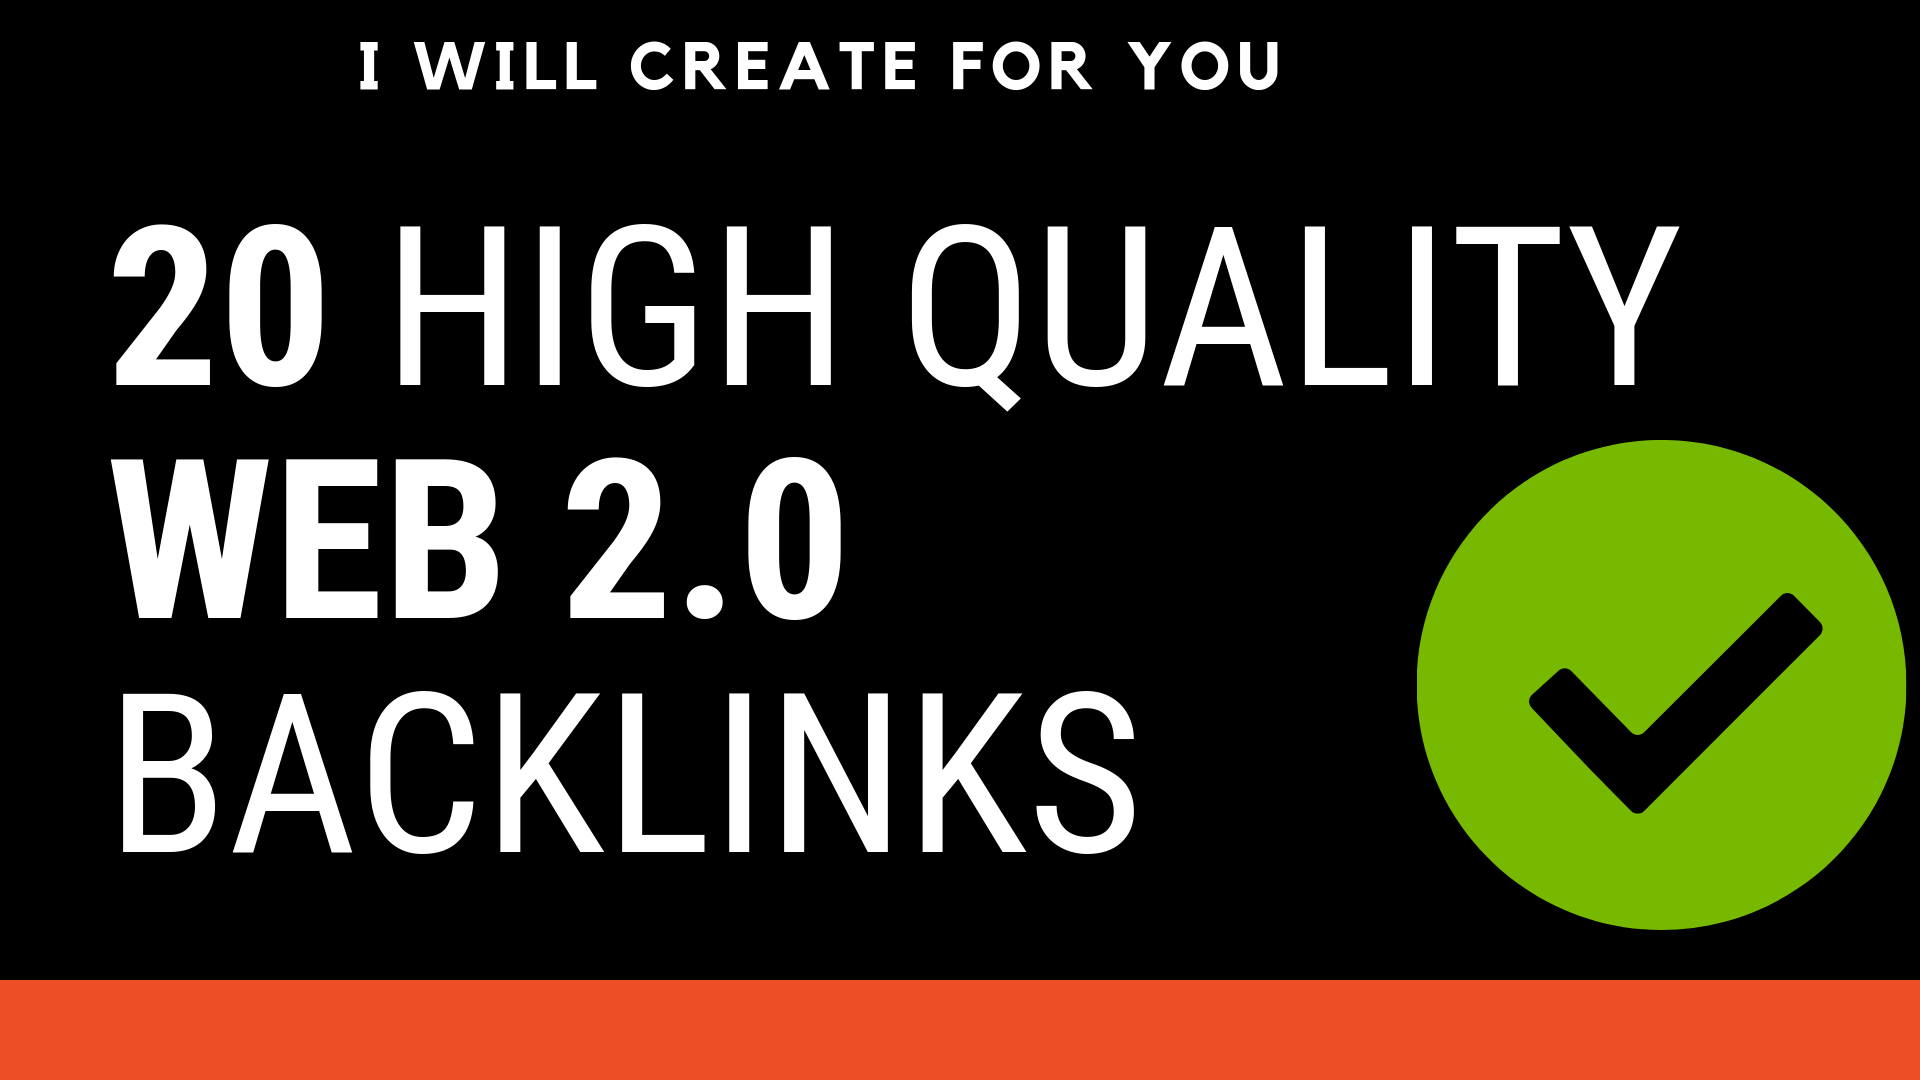 20 Web 2.0 On Unique Domains SEO Backlinks For Your Google Ranking